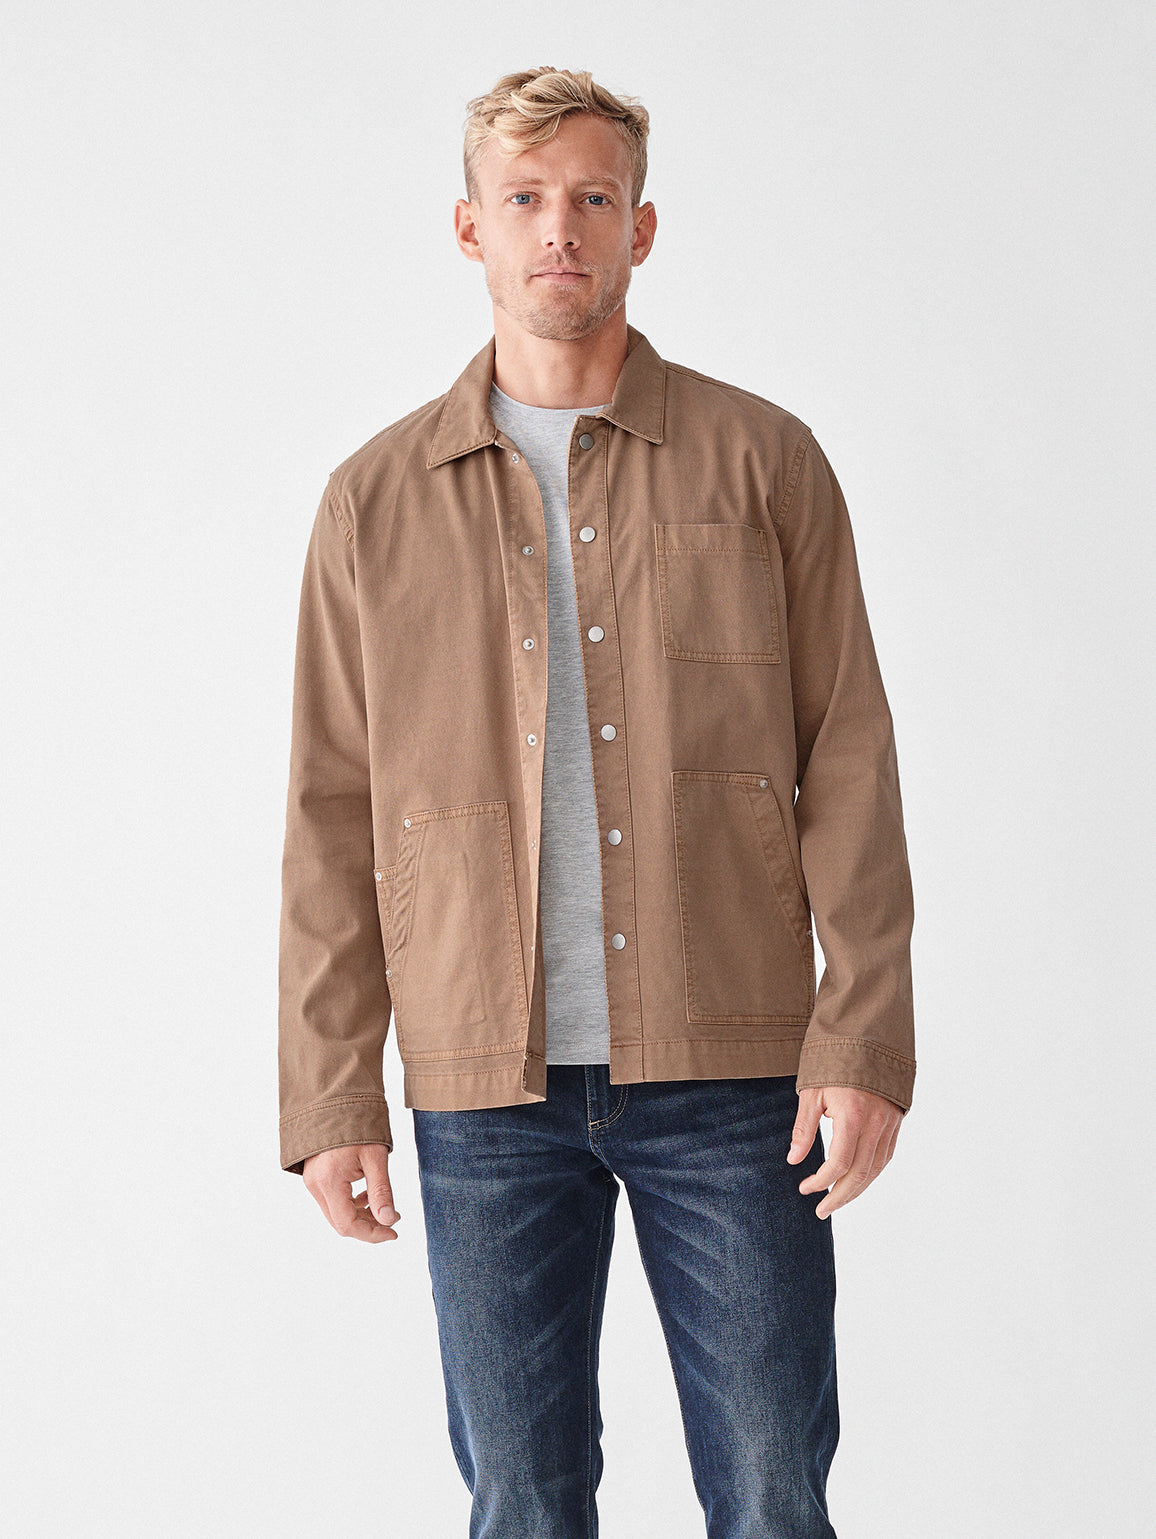 Sean Shirt Jacket | Sceptor